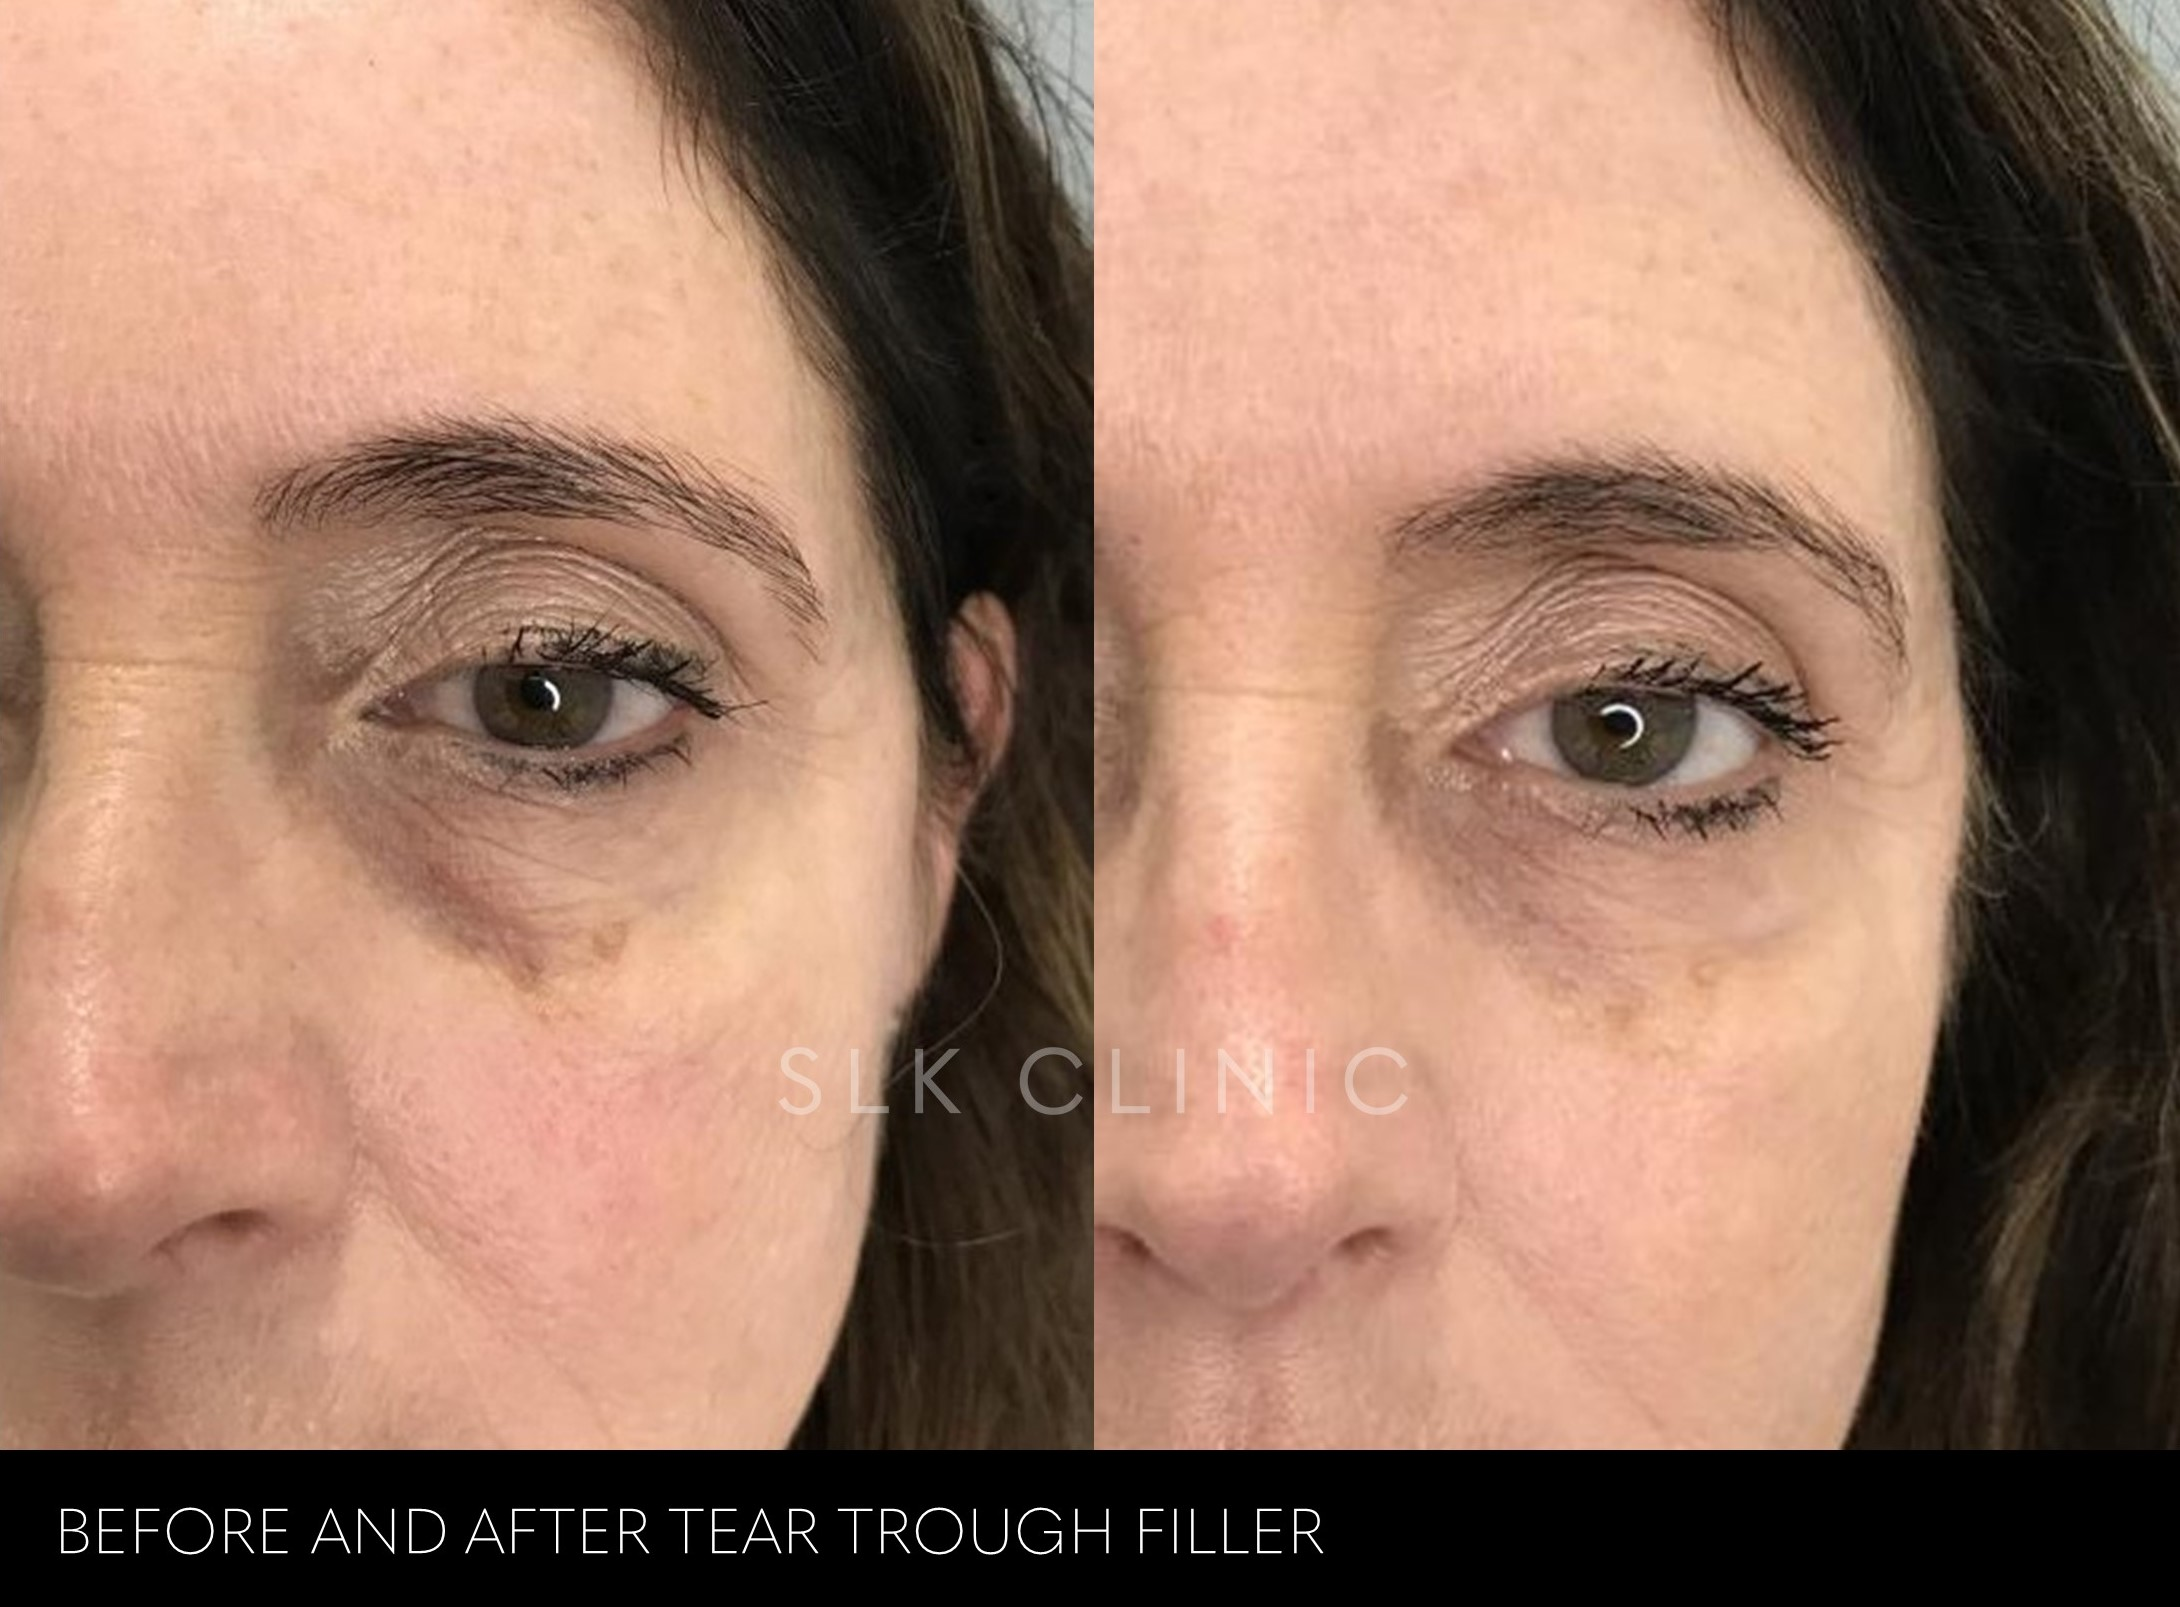 before and after photo tear trough under eye filler nashville - restylane woman